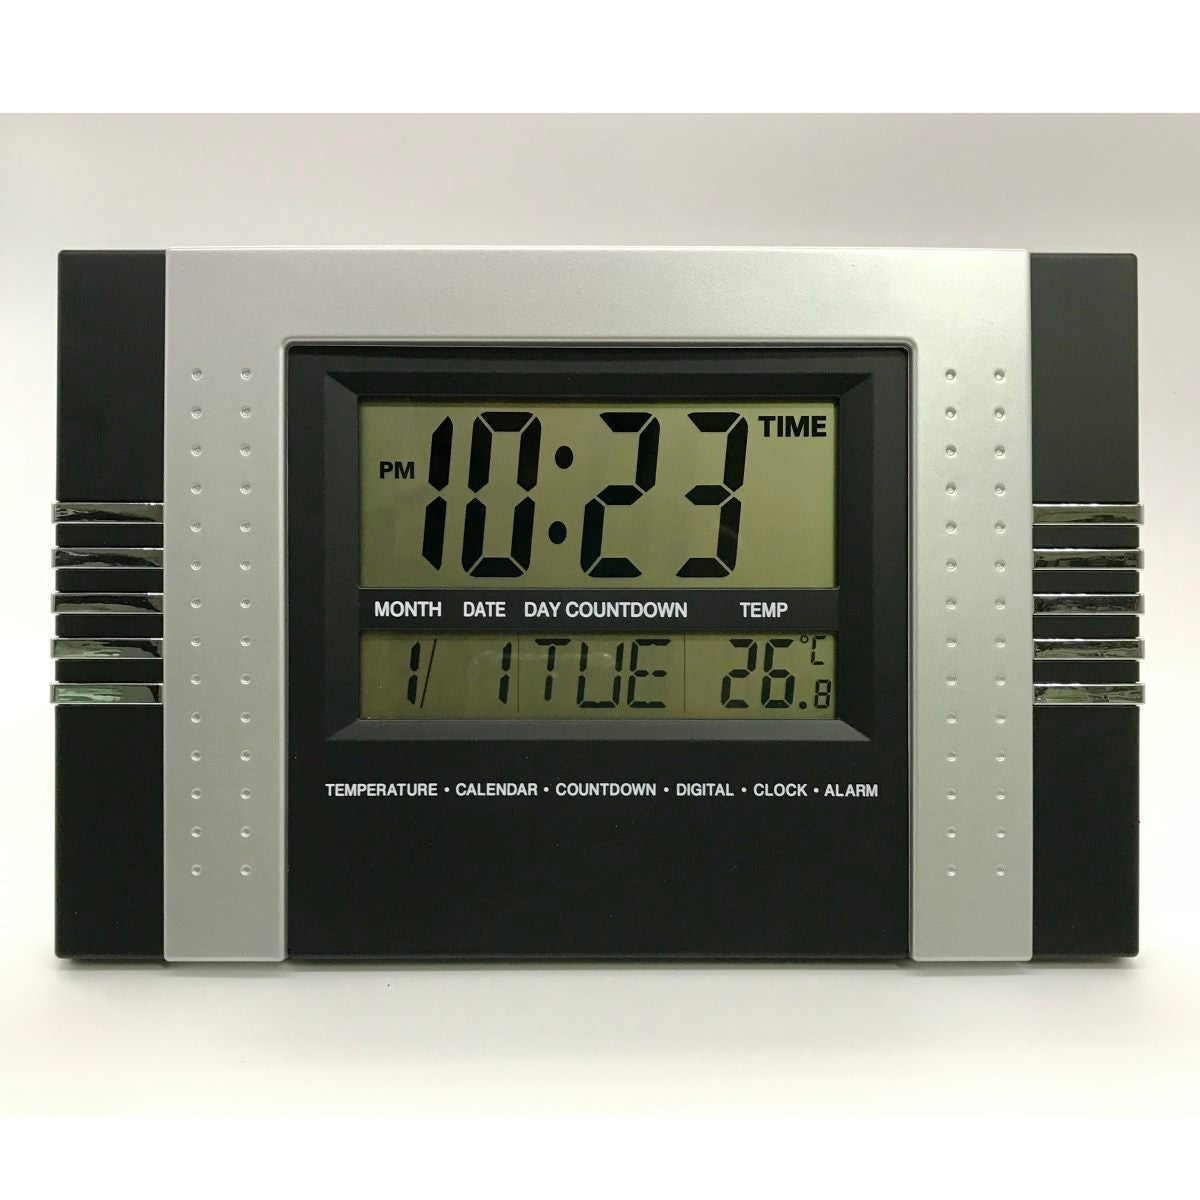 Checkmate Rayla Multifunction Digital Wall & Desk Clock, Black, 29cm